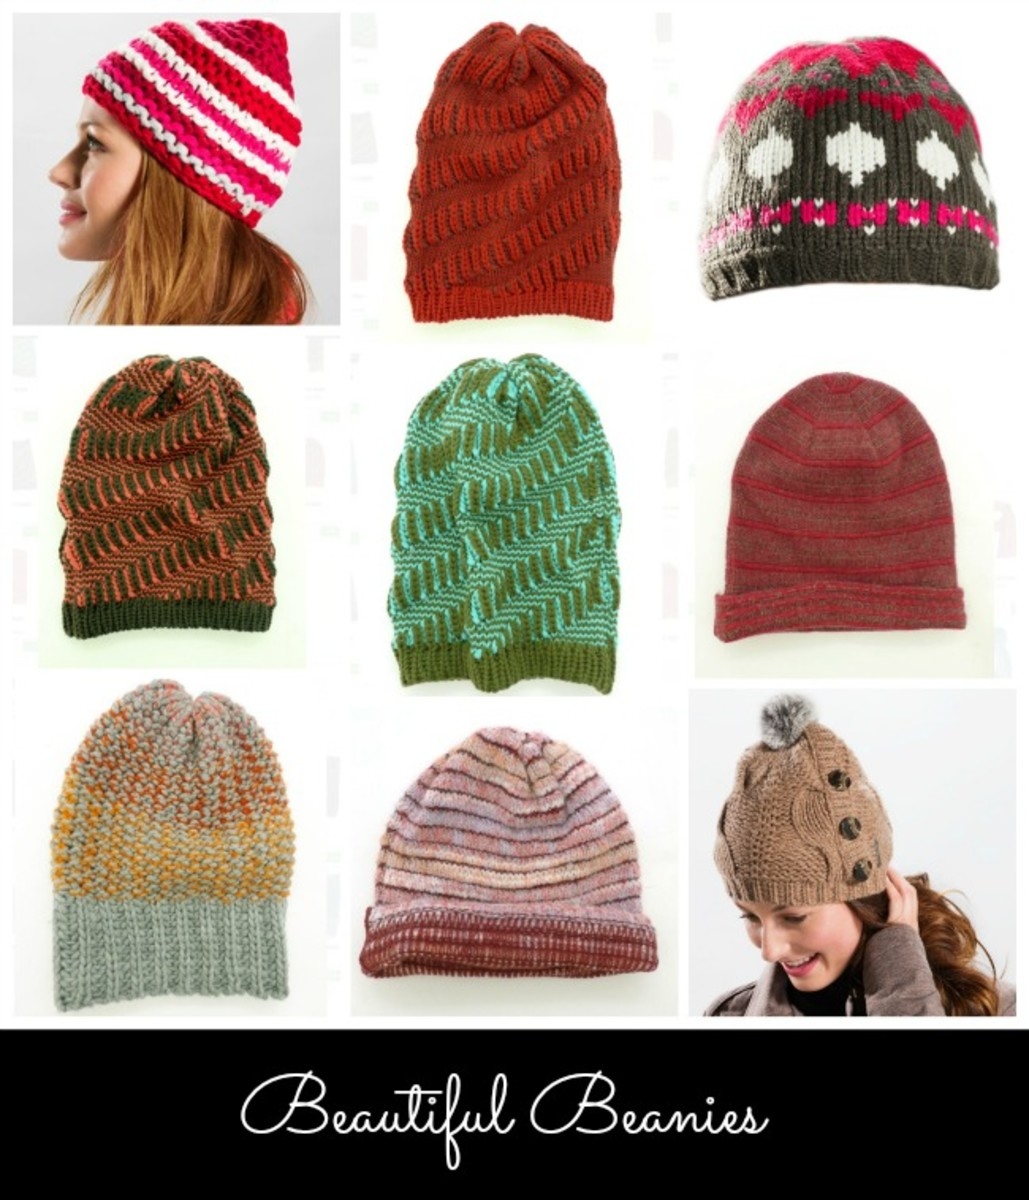 beanies, beanie trend, hats, fashion, winter fashions